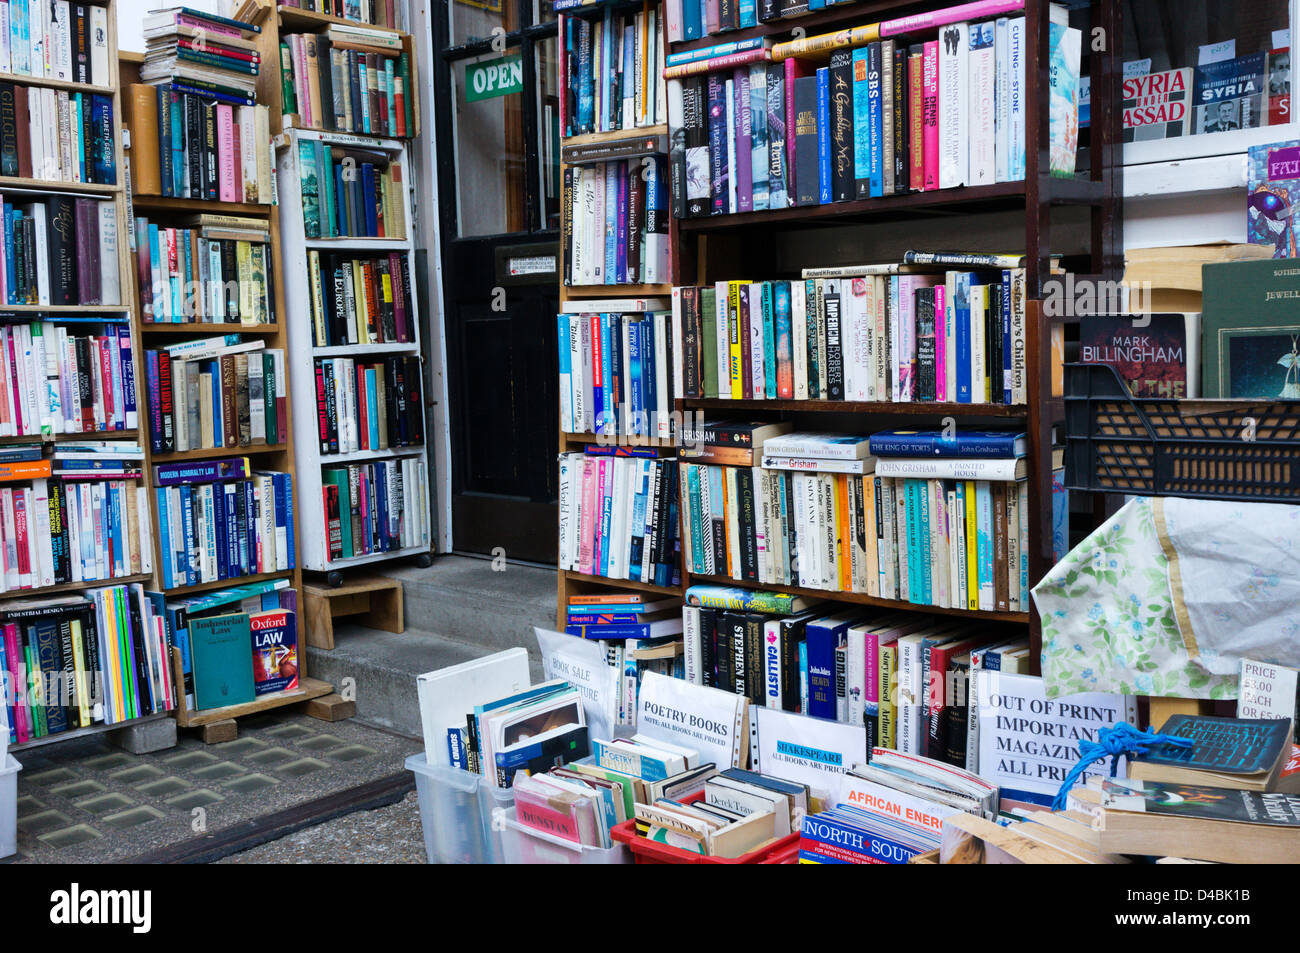 Books stacked on shelves outside a secondhand bookshop. Stock Photo